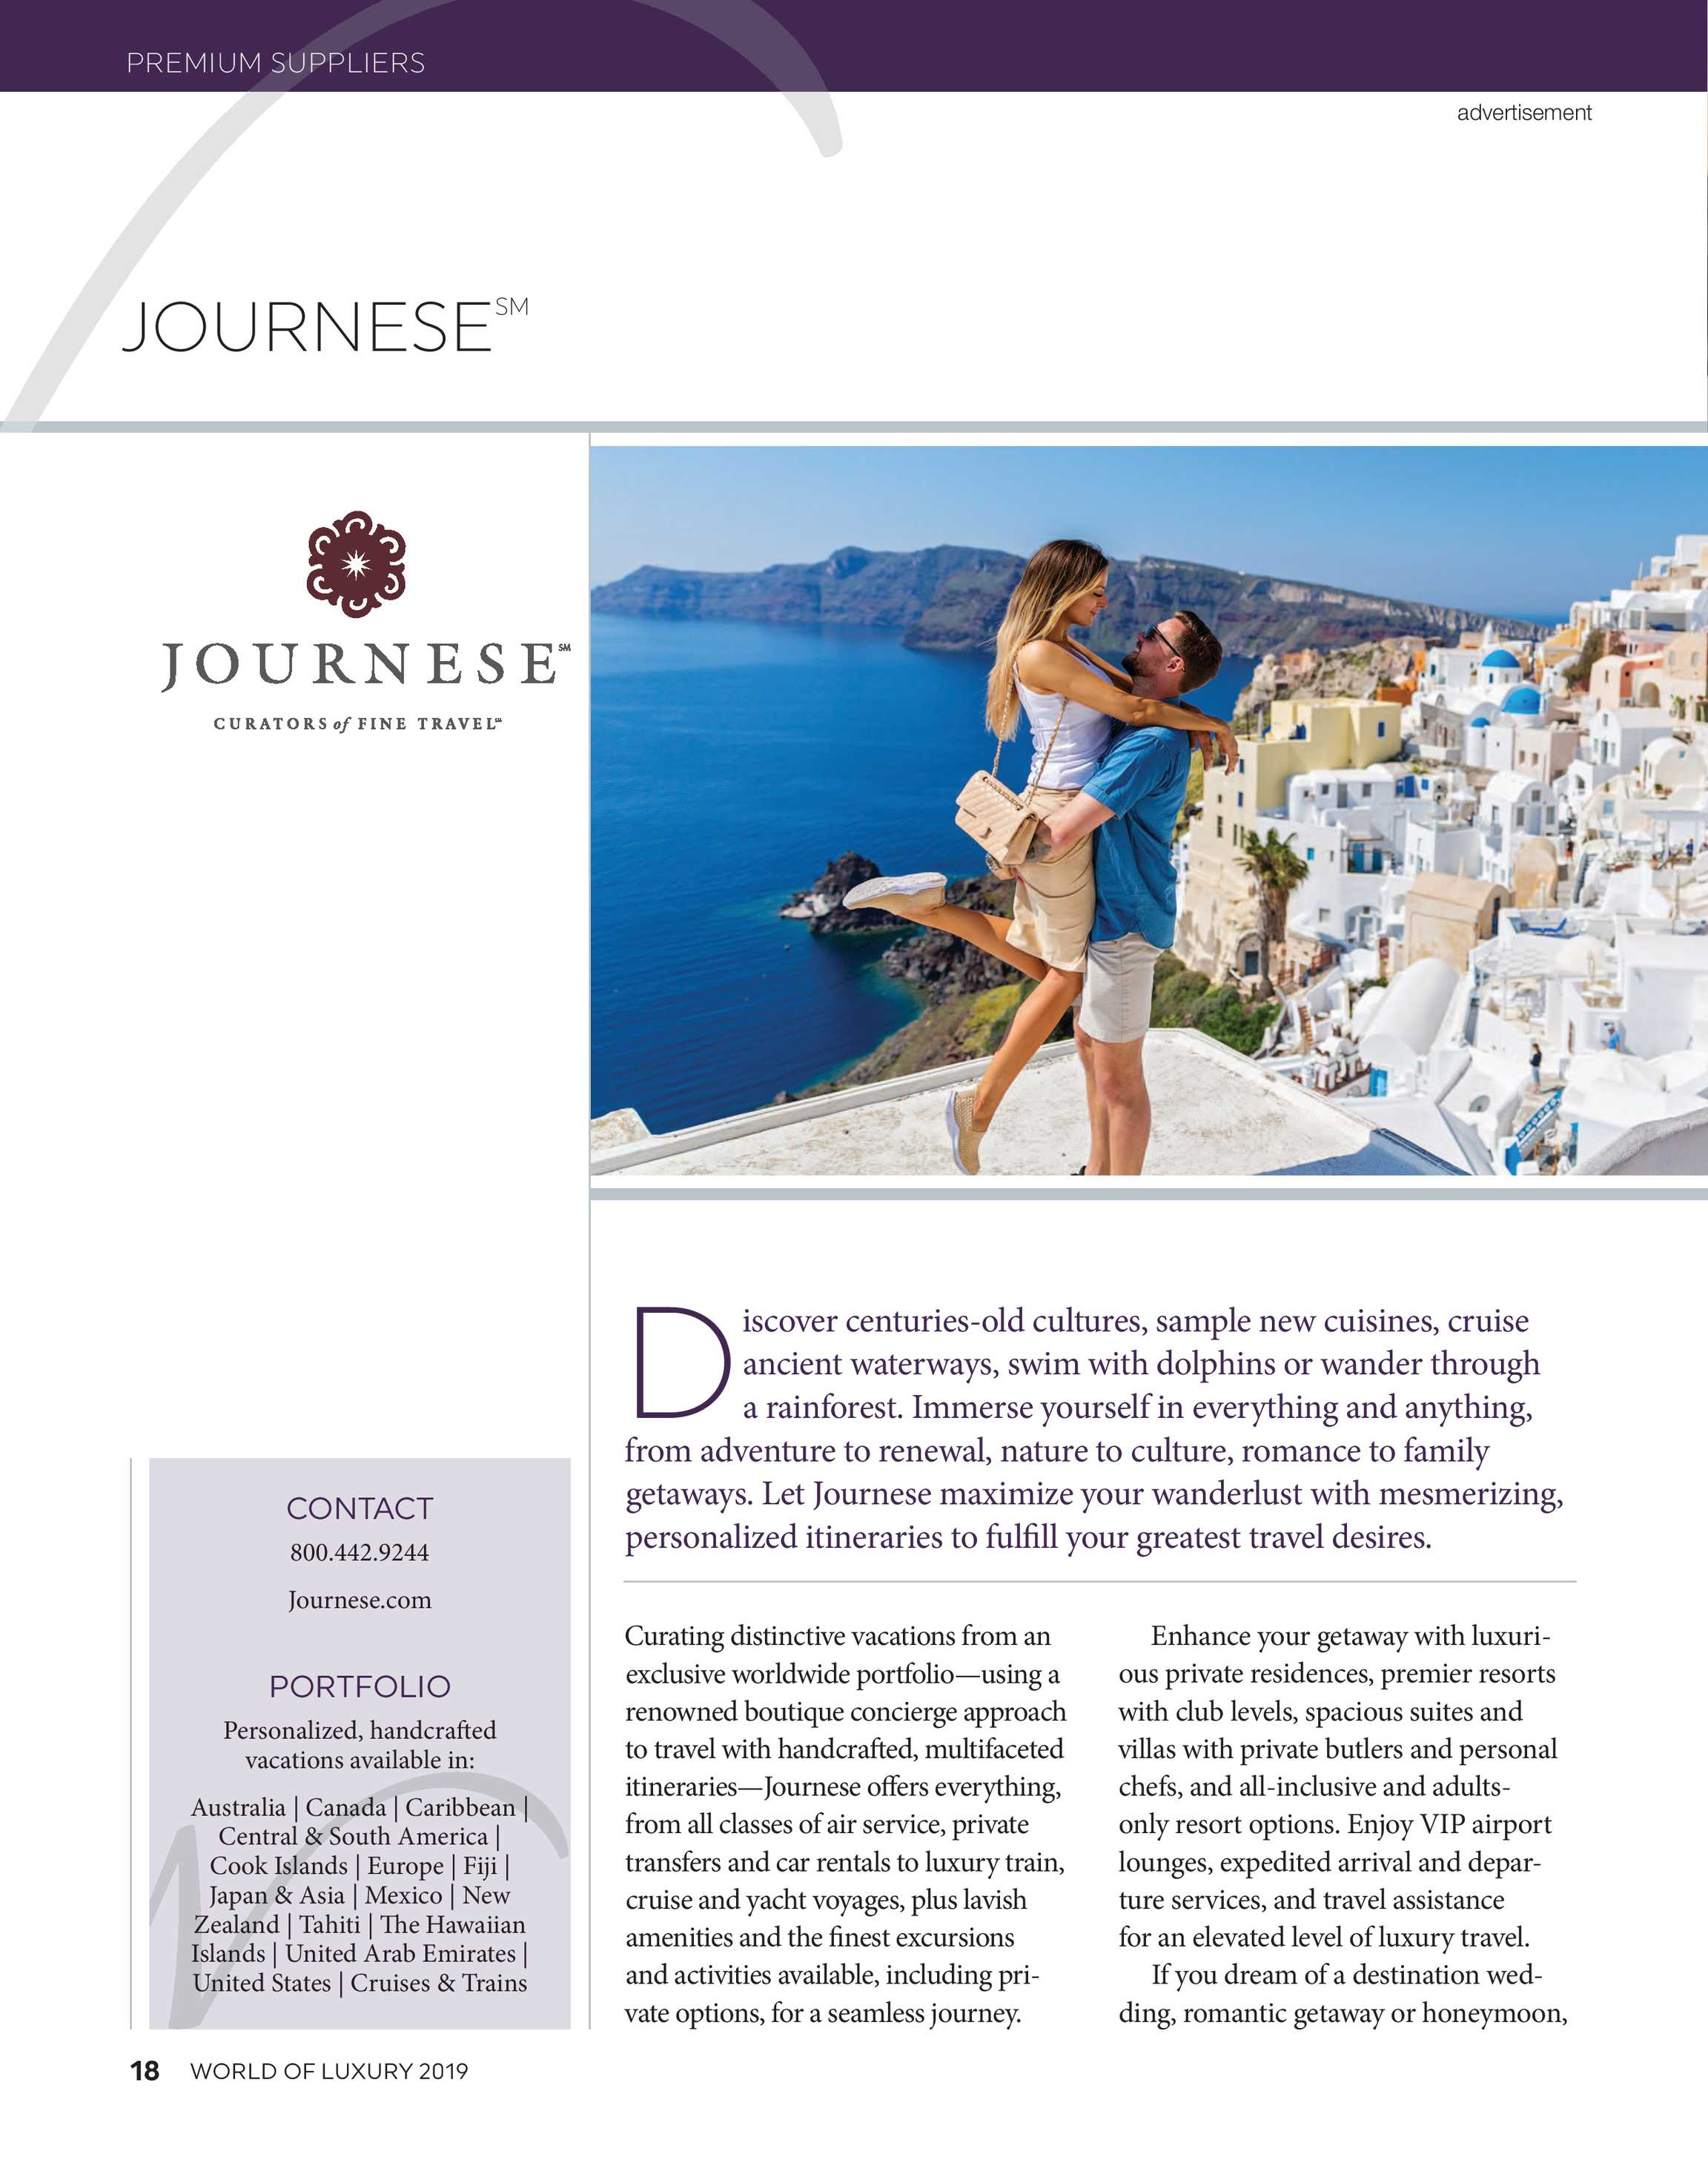 Travel Weekly - World of Luxury 2019 - page 18